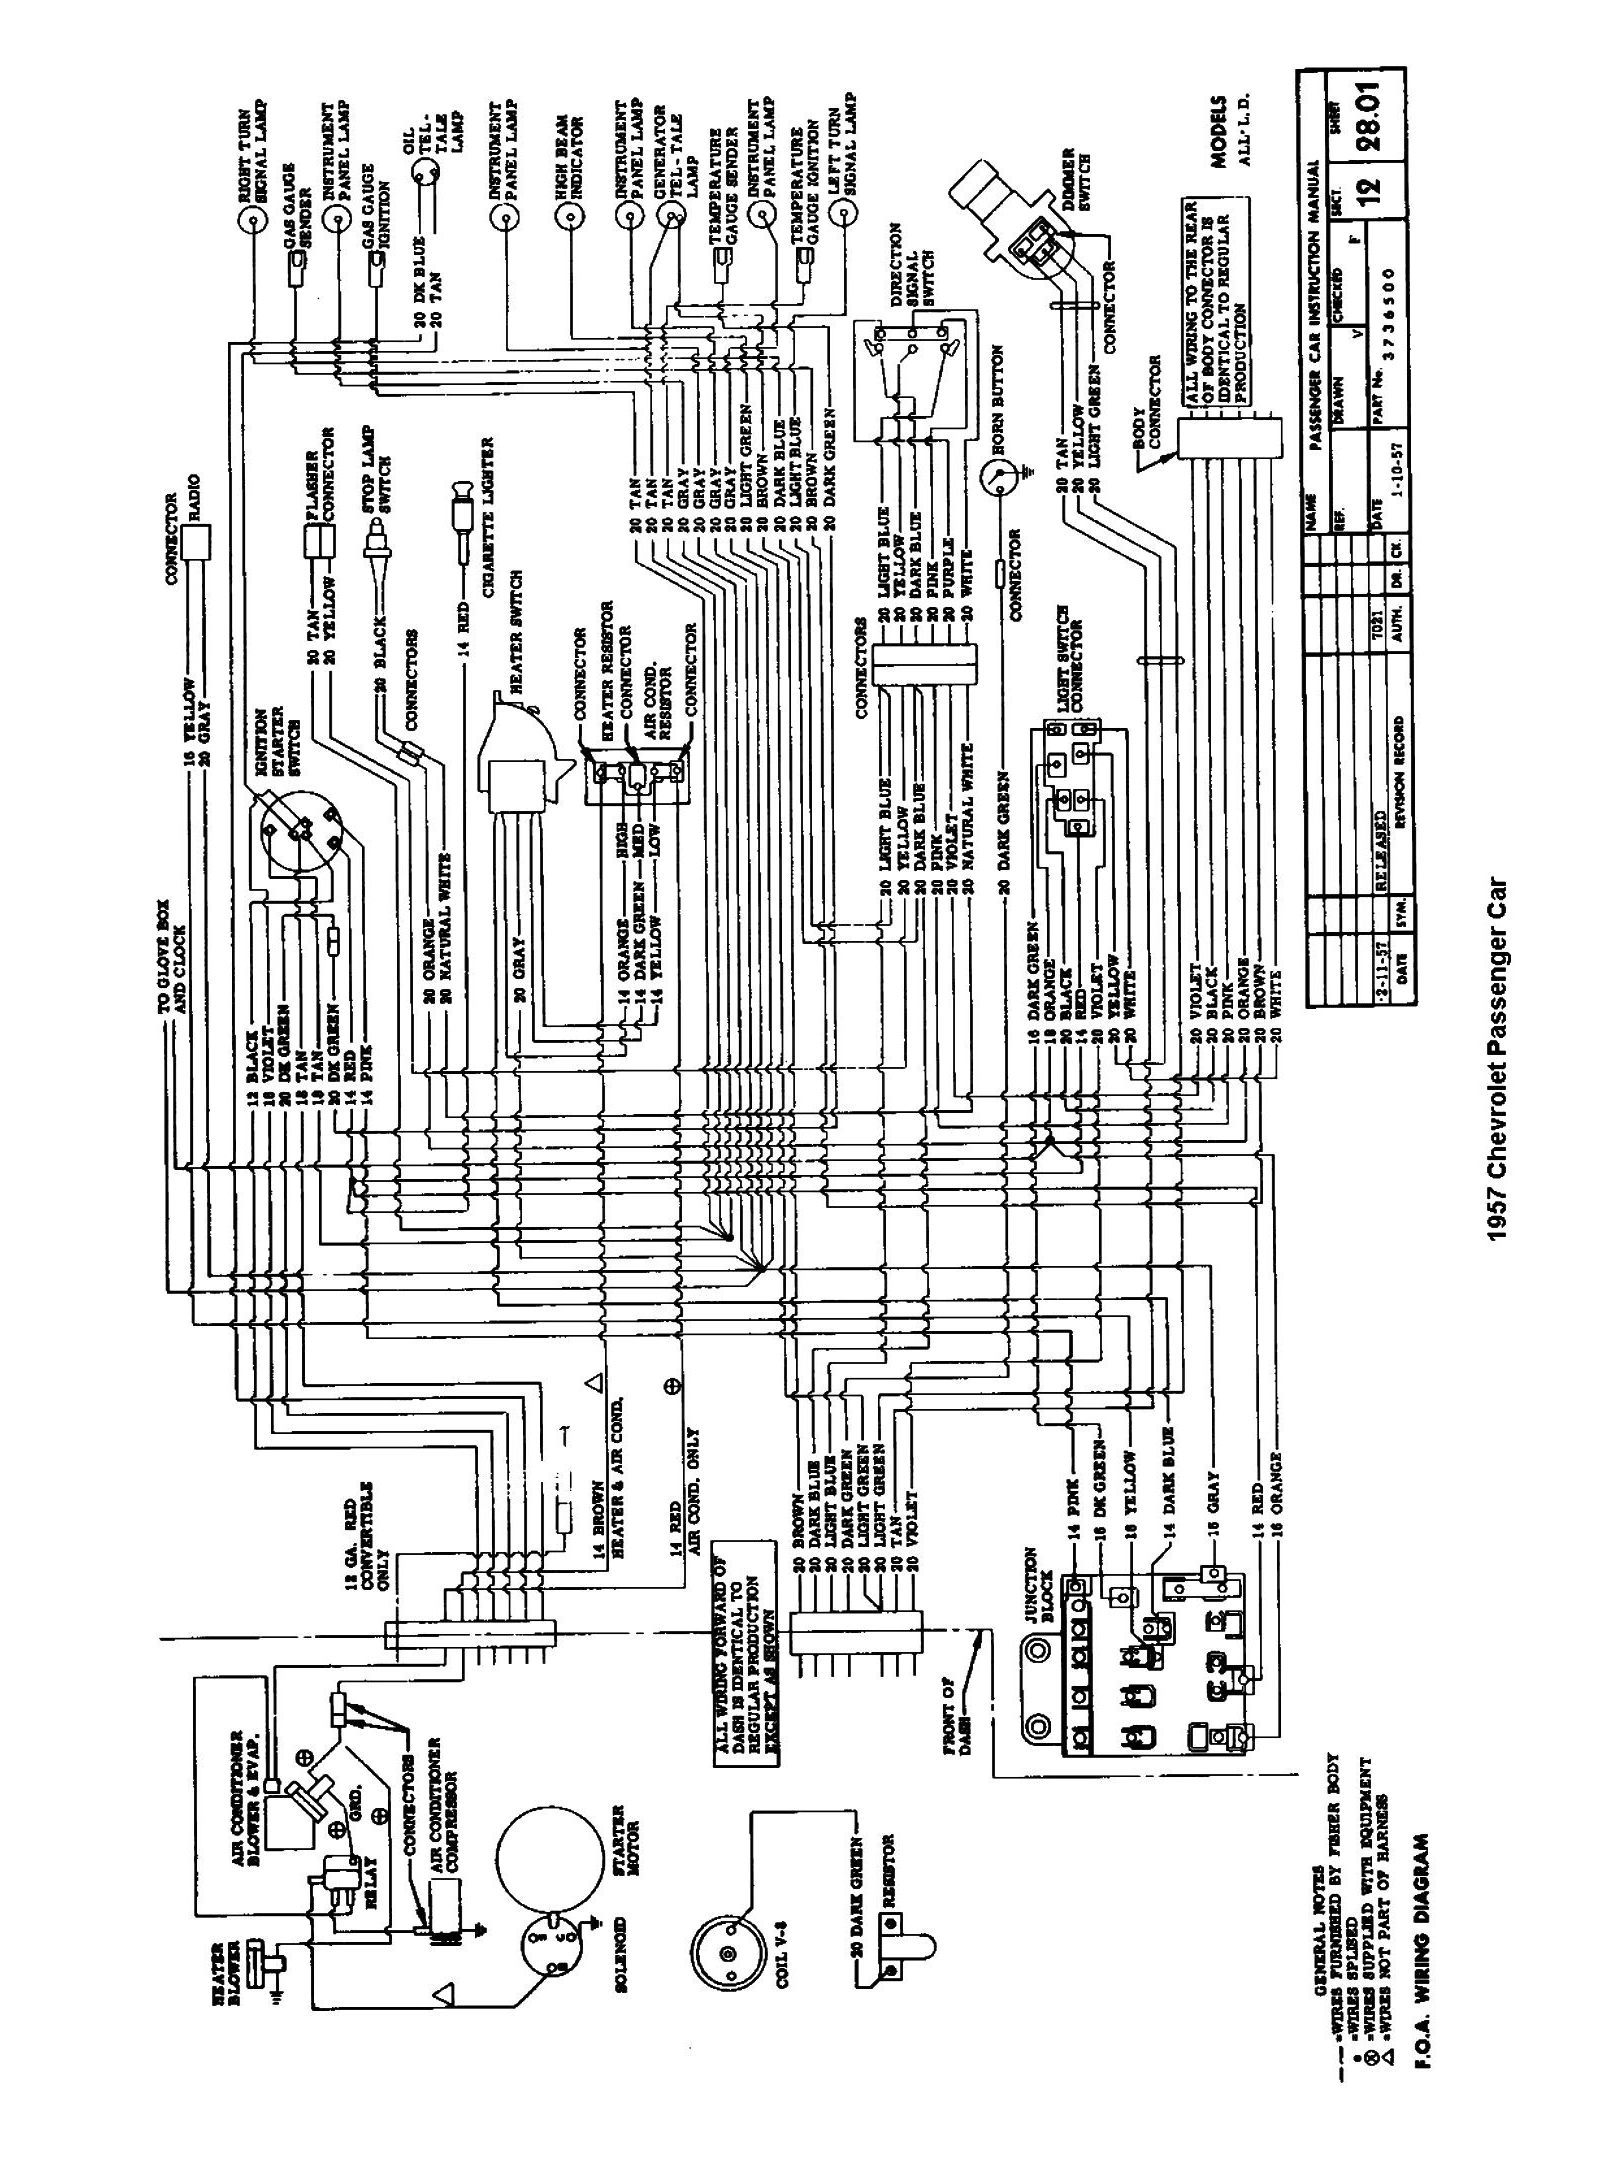 57car2 chevy wiring diagrams 1957 chevy truck turn signal wiring diagram at pacquiaovsvargaslive.co